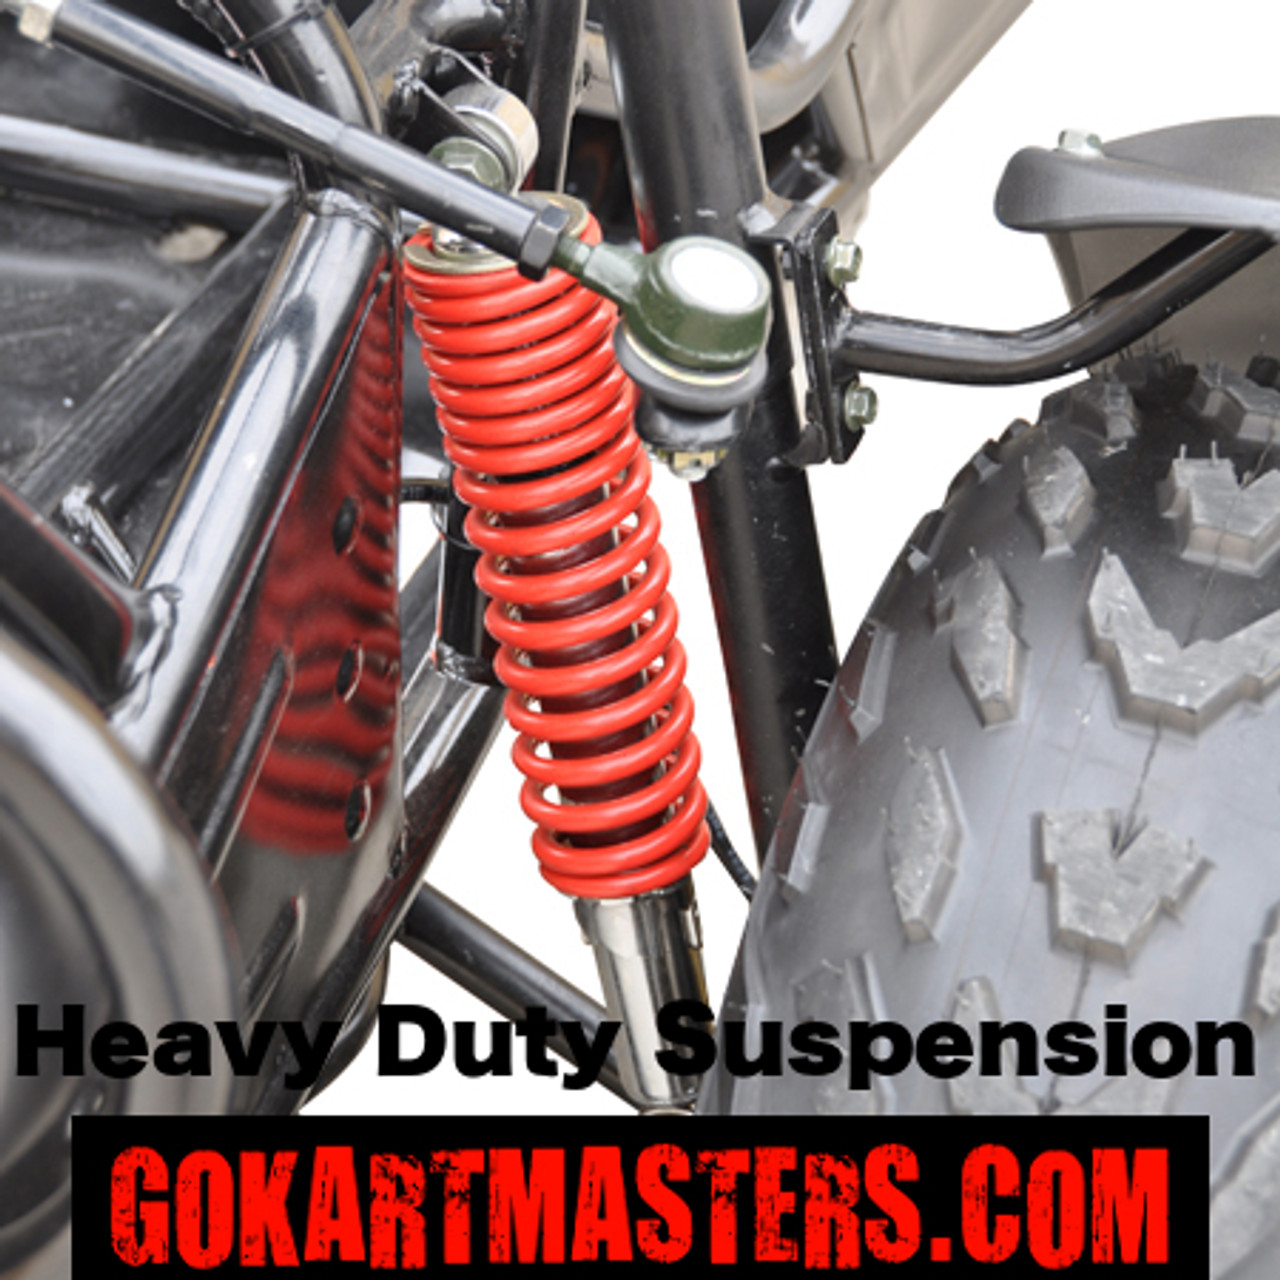 TrailMaster 150 XRX Go-Kart - Heavy Duty Suspension